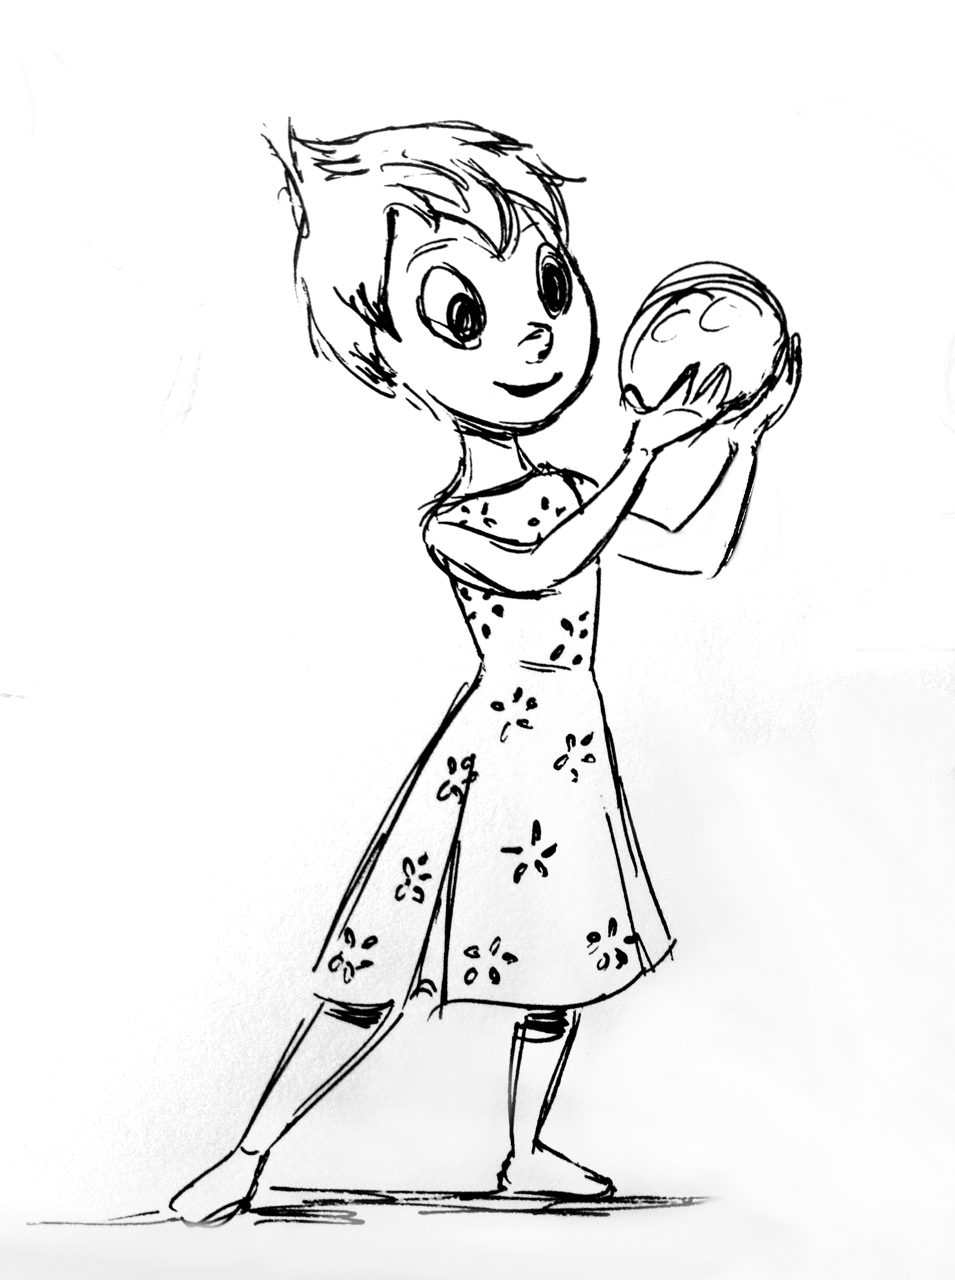 955x1280 Drawing Of Disney Pixar's Joy From Inside Out. By Yenthe Joline